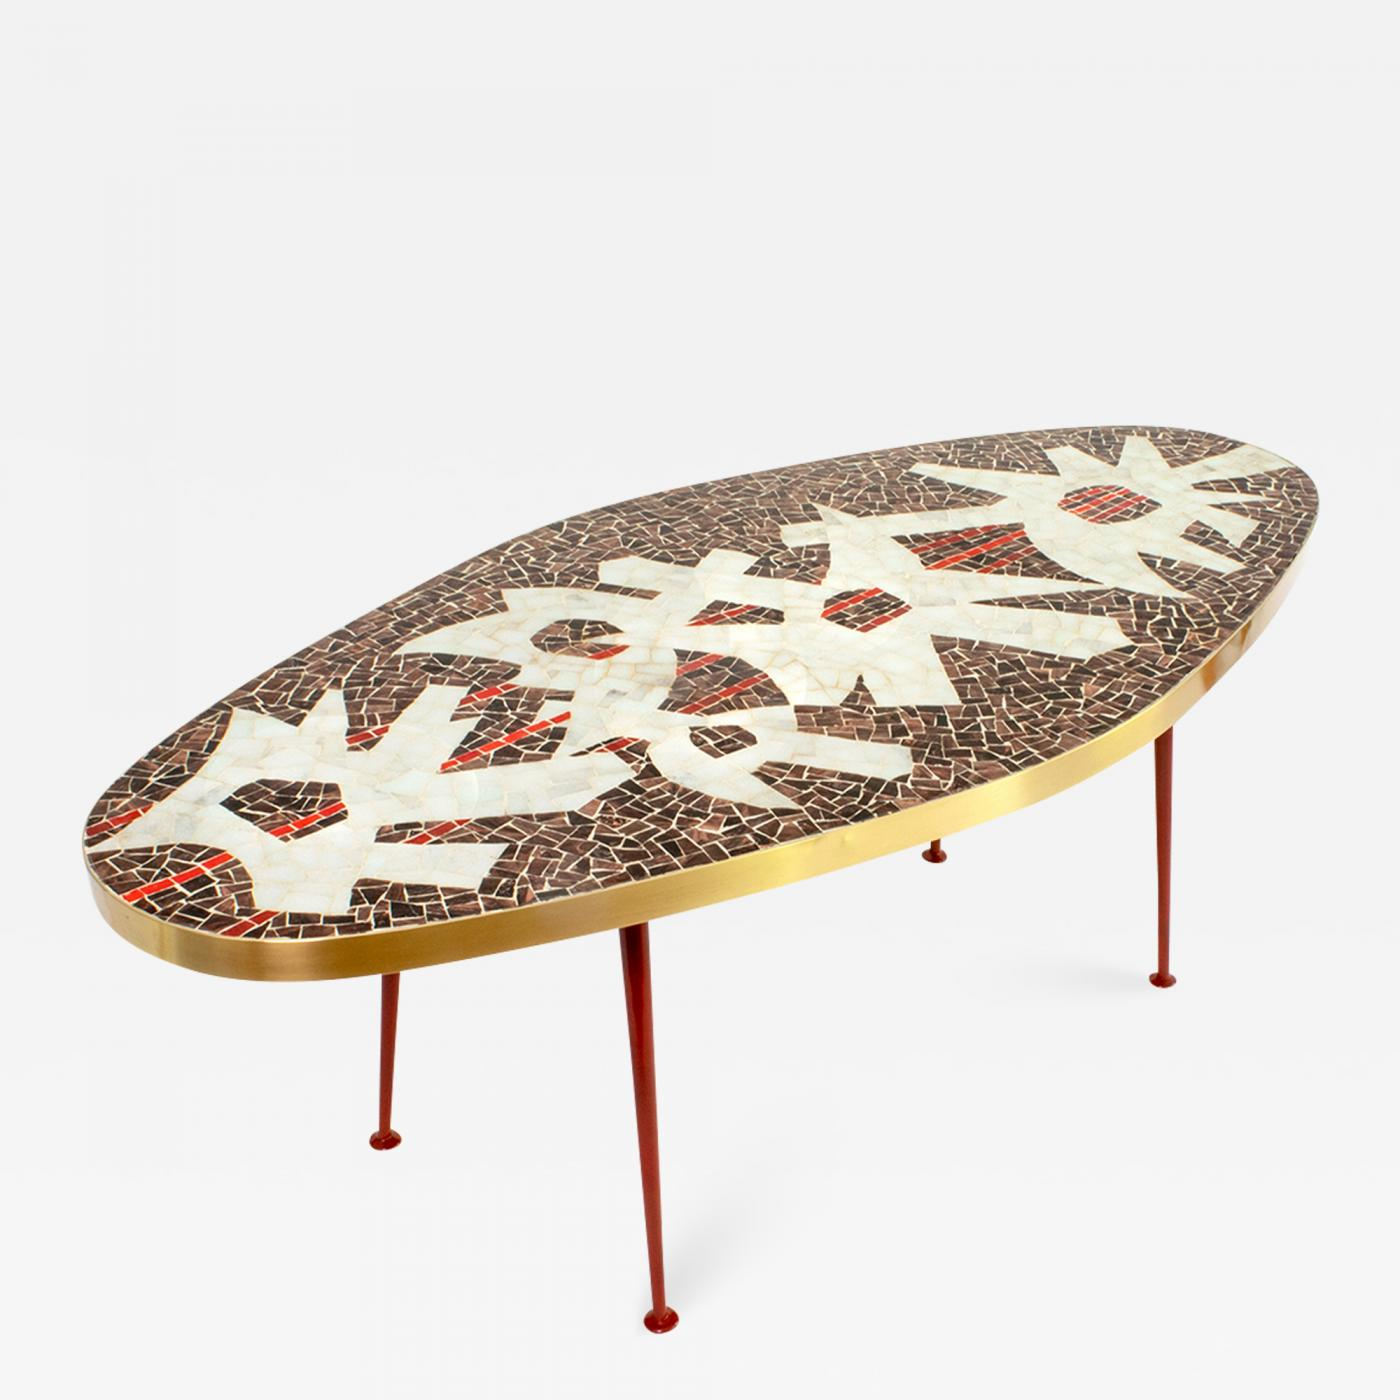 berthold muller mid century modern mosaic coffee table rh incollect com mosaic coffee table next mosaic coffee table diy